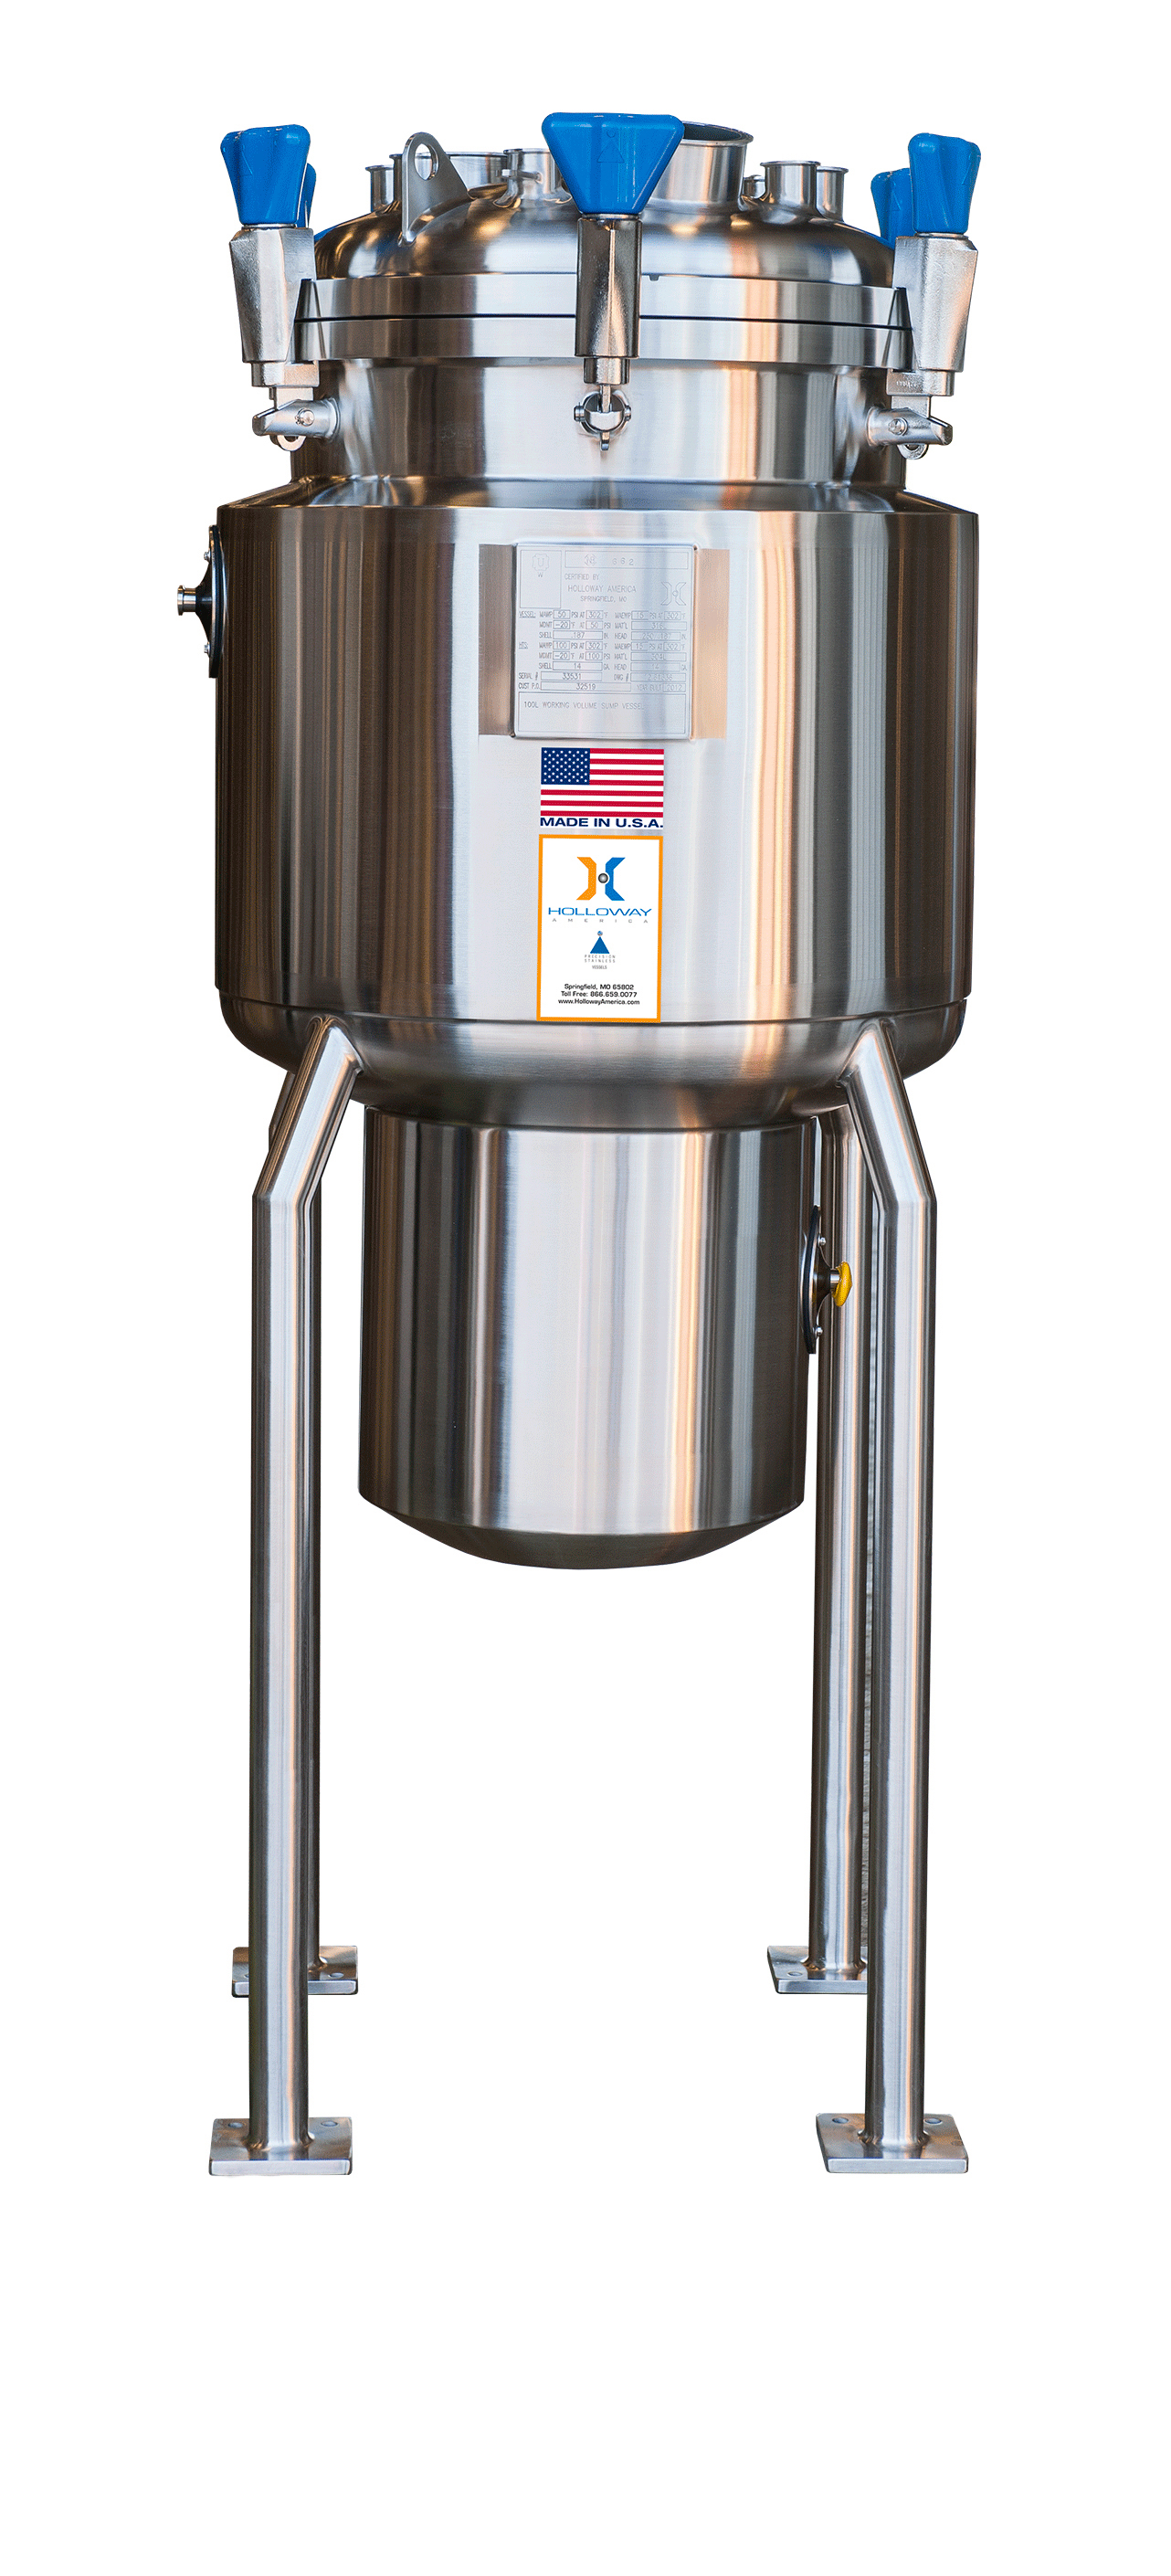 This stainless steel tank meets our pressure vessels standards.